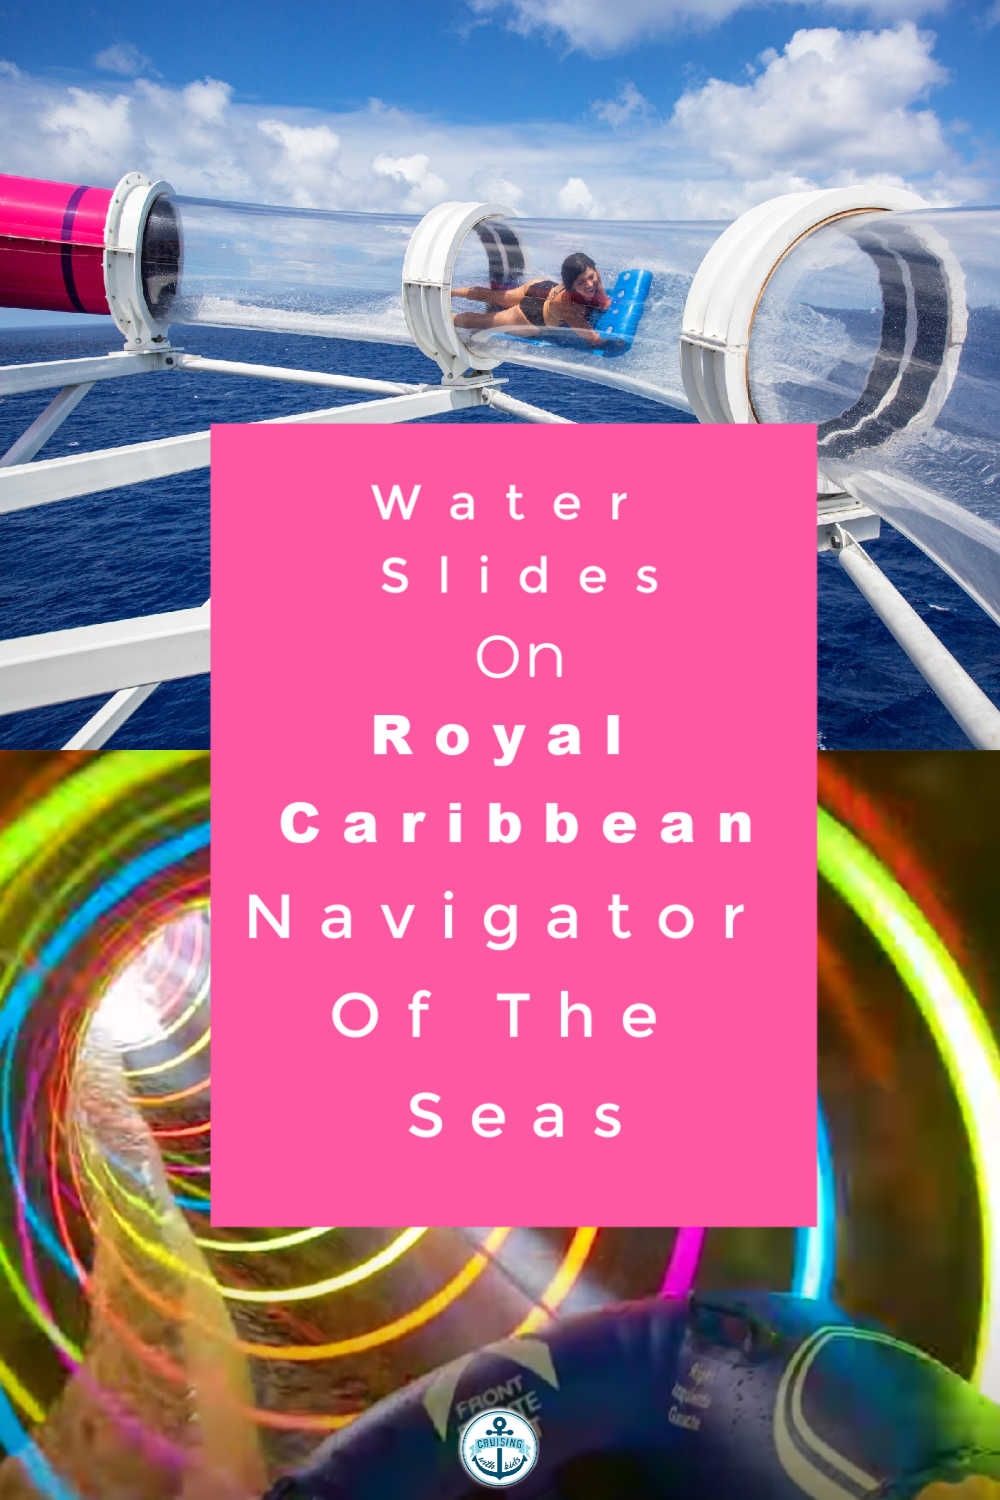 Guide To The Water slides on Royal Caribbeans Navigator Of The Seas